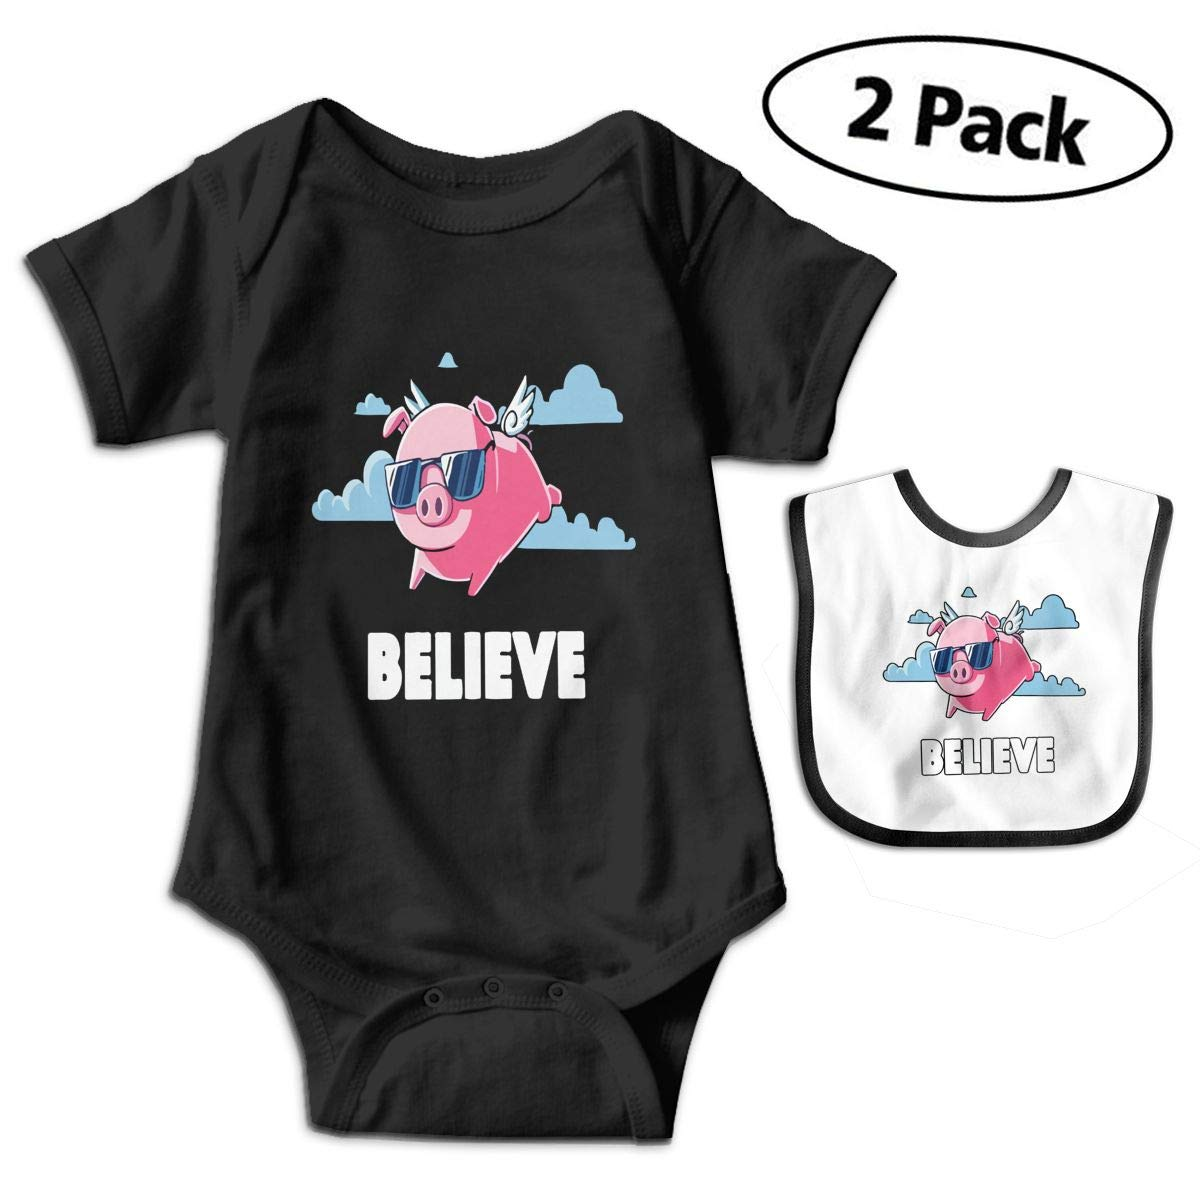 I Believe When Pigs Fly Infant Baby Boys Girls Short Sleeve Romper Bodysuit Outfit Clothes